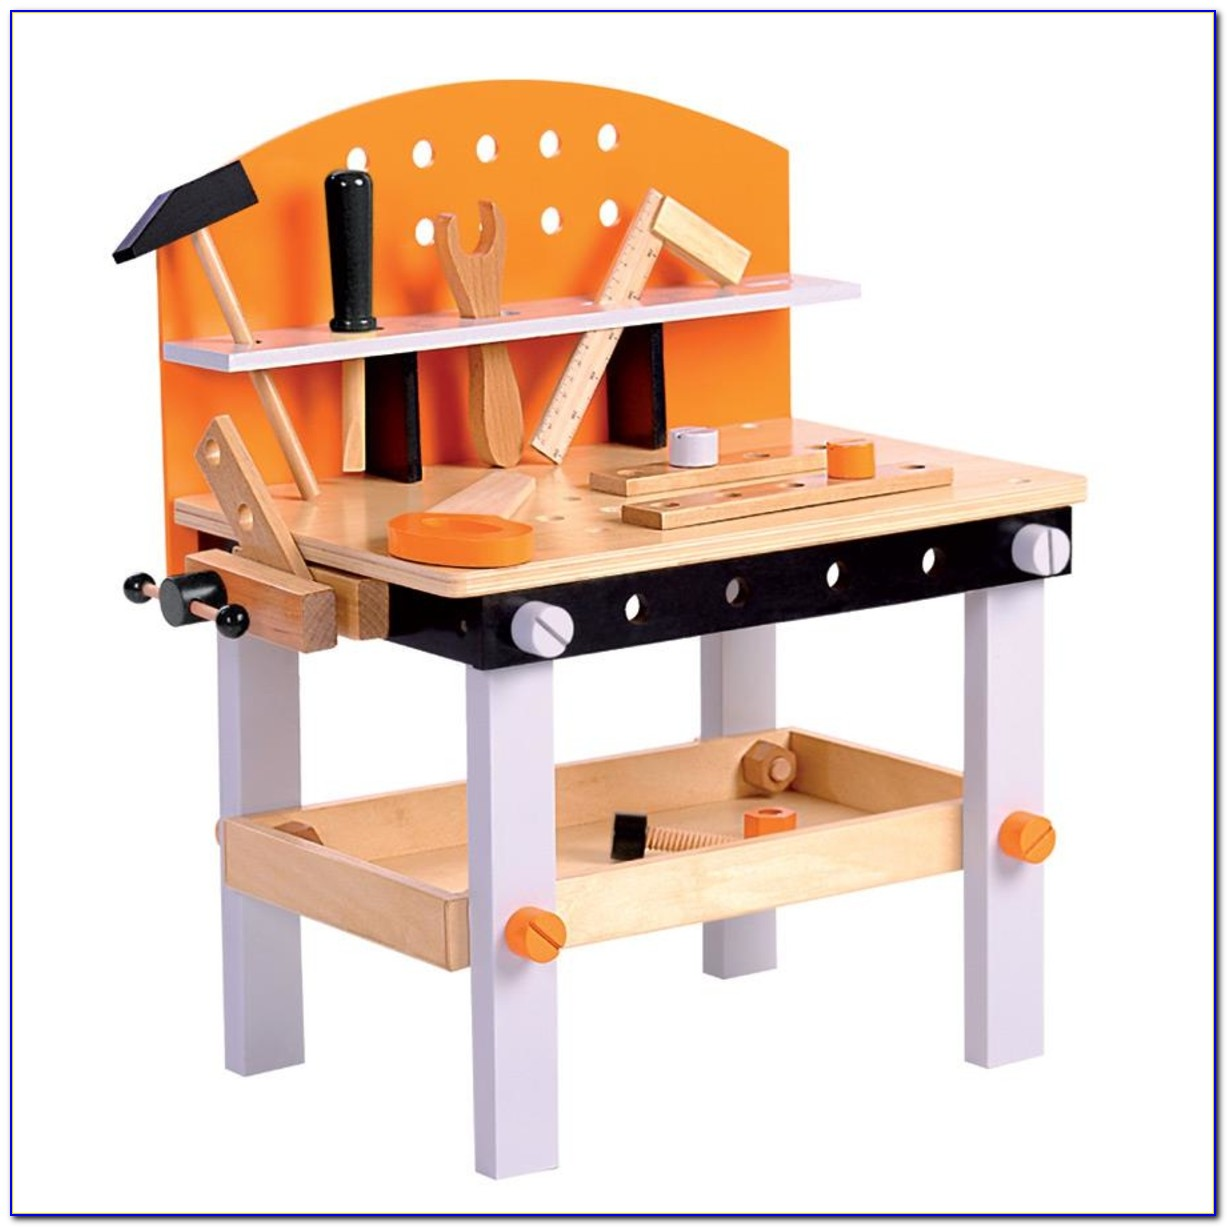 Wooden Toy Workbench Nz